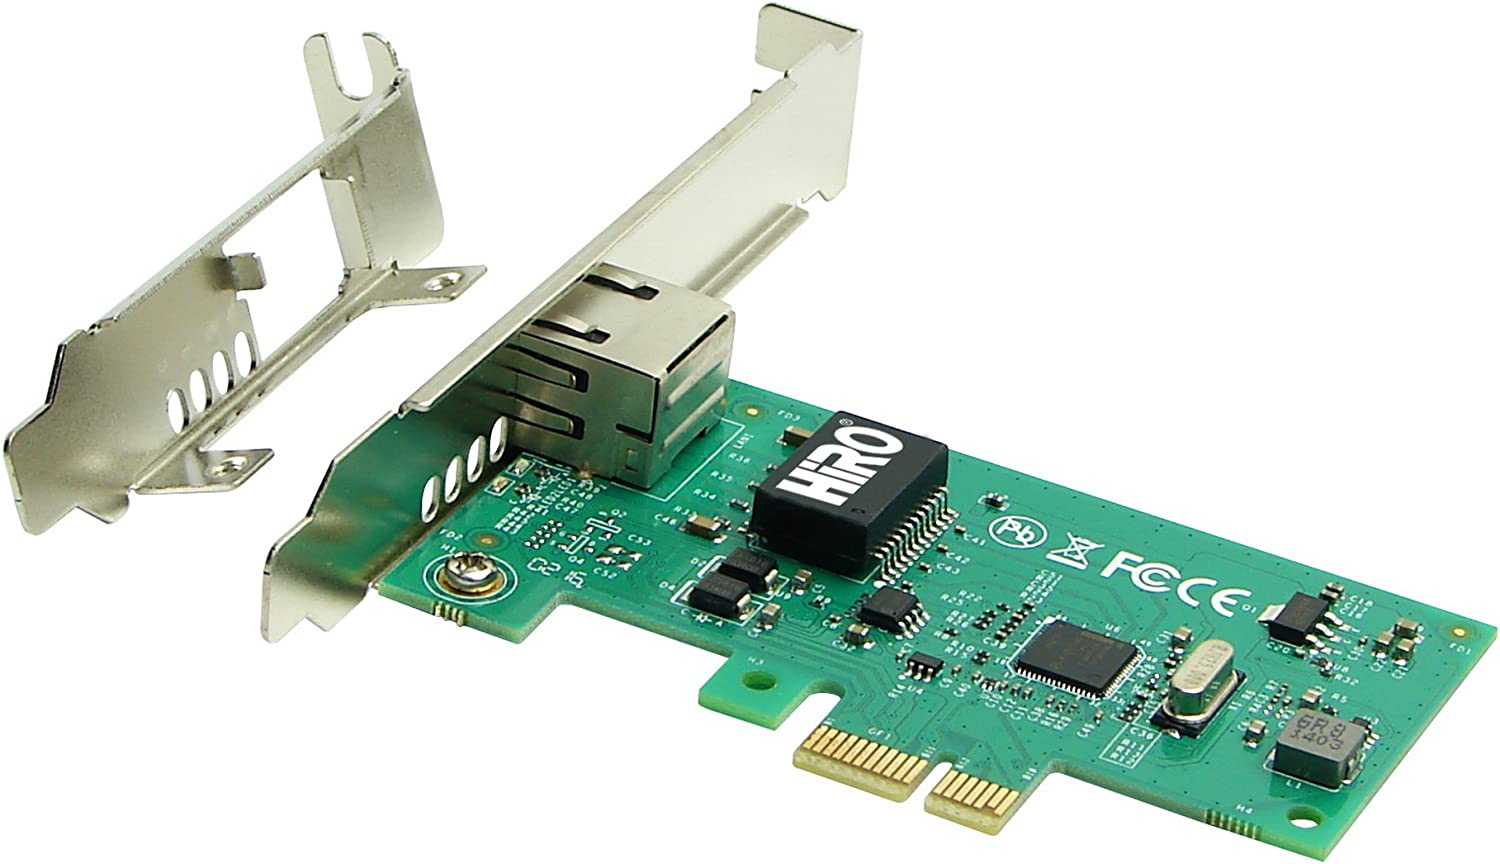 HiRO H50336 Intel 82574L PCIe PCI Express PCI-E x1 Gigabit Ethernet Network Adapter PXE WOL VLAN VMware ESXi Windows 10 plug n play no driver installation needed Windows 8.1 8 7 Compatible